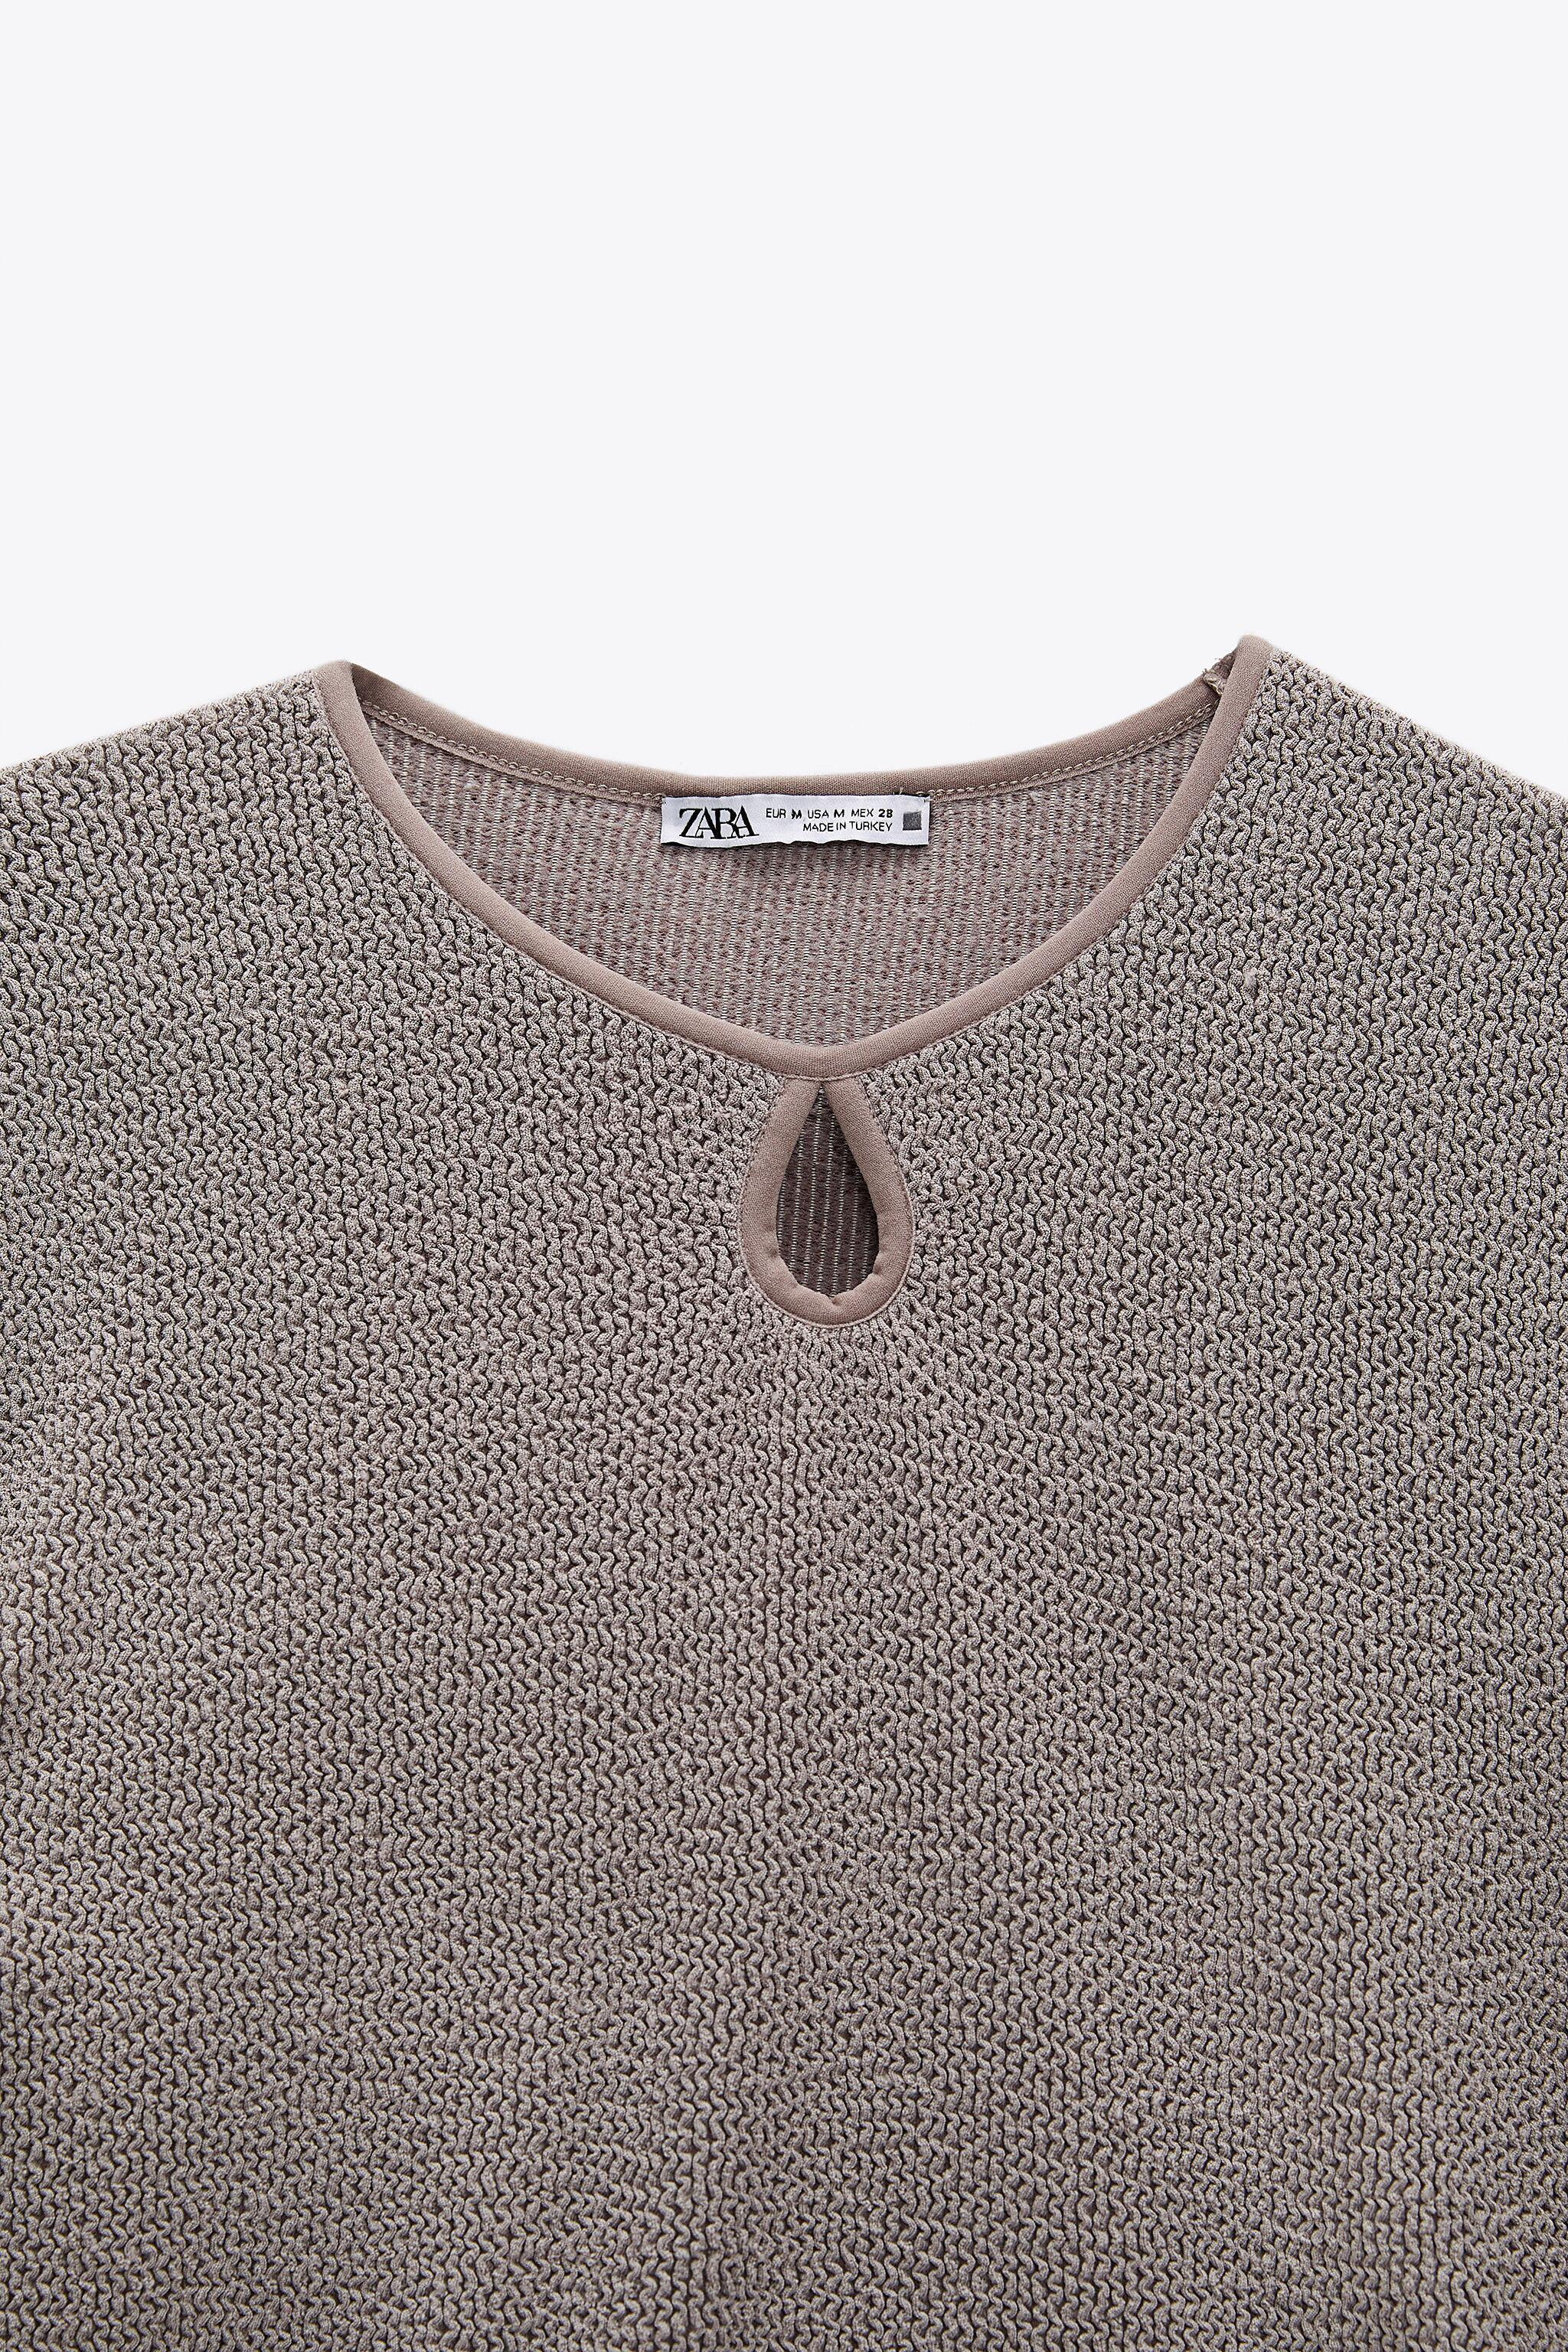 CROPPED TEXTURED WEAVE SHIRT 5